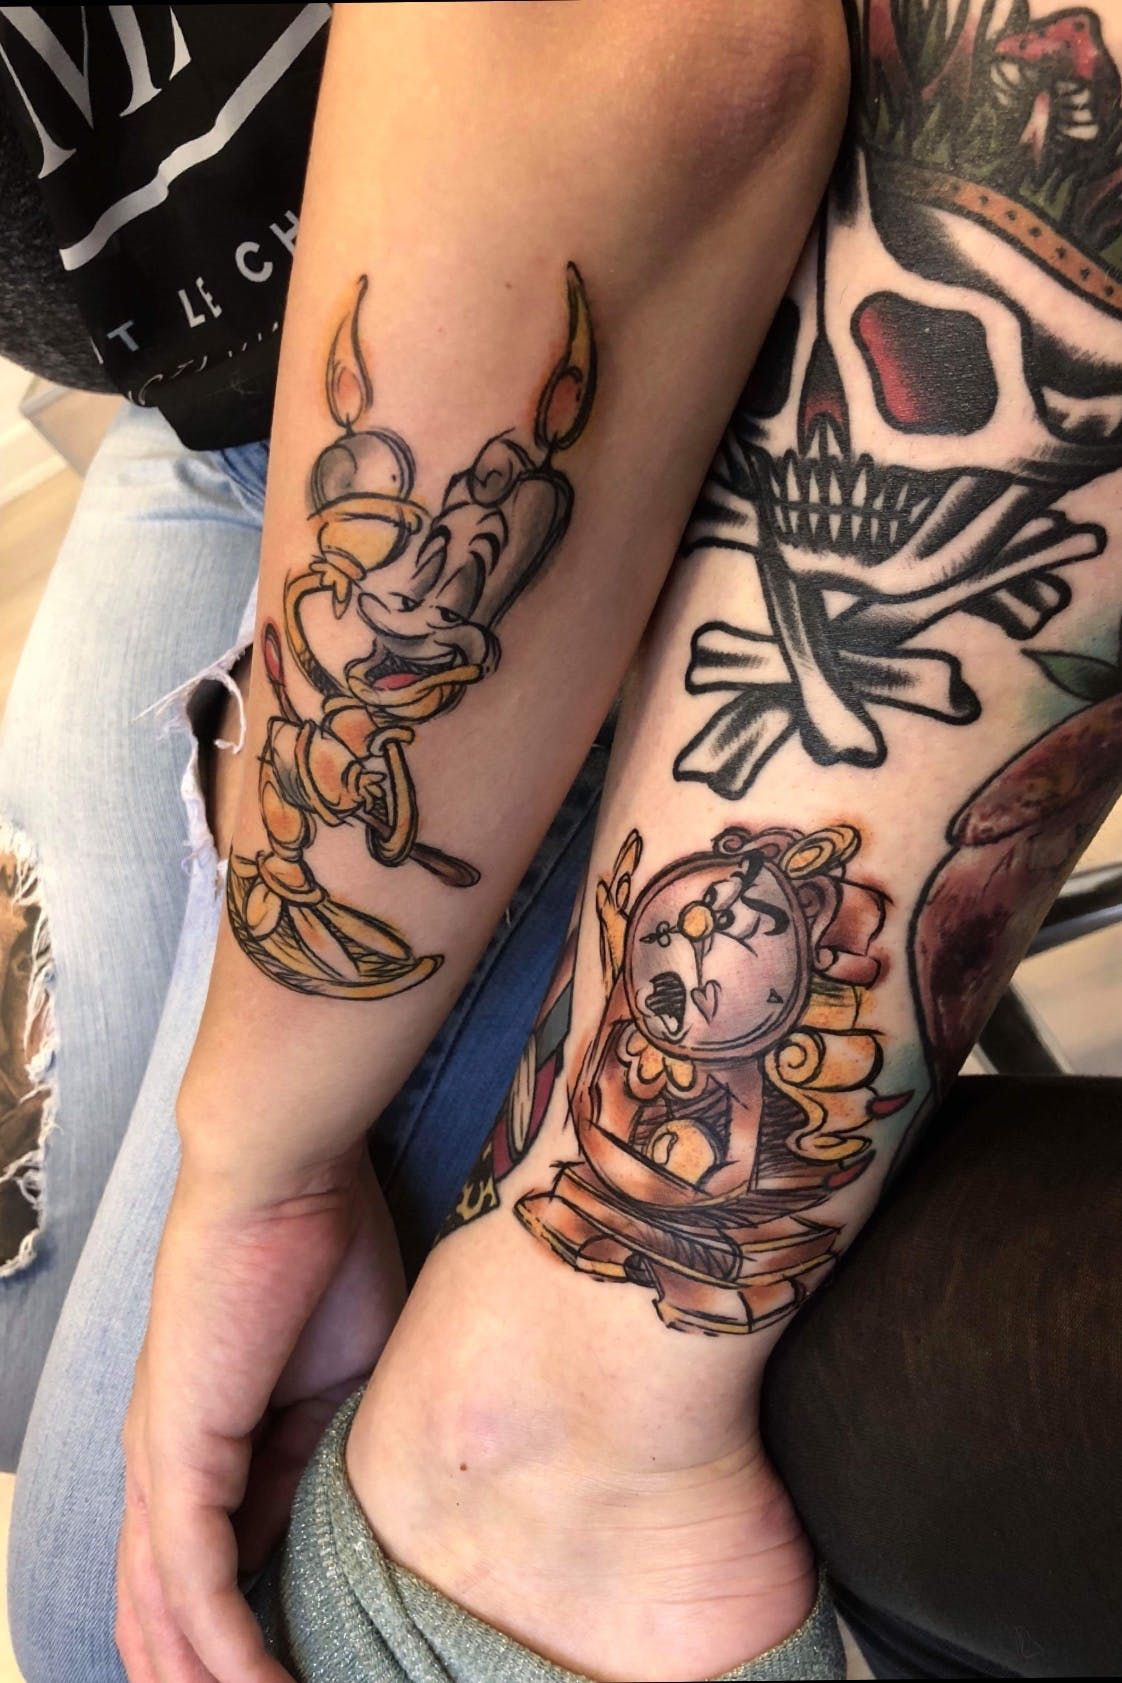 tattooartchris Mede this on my to best Friends my